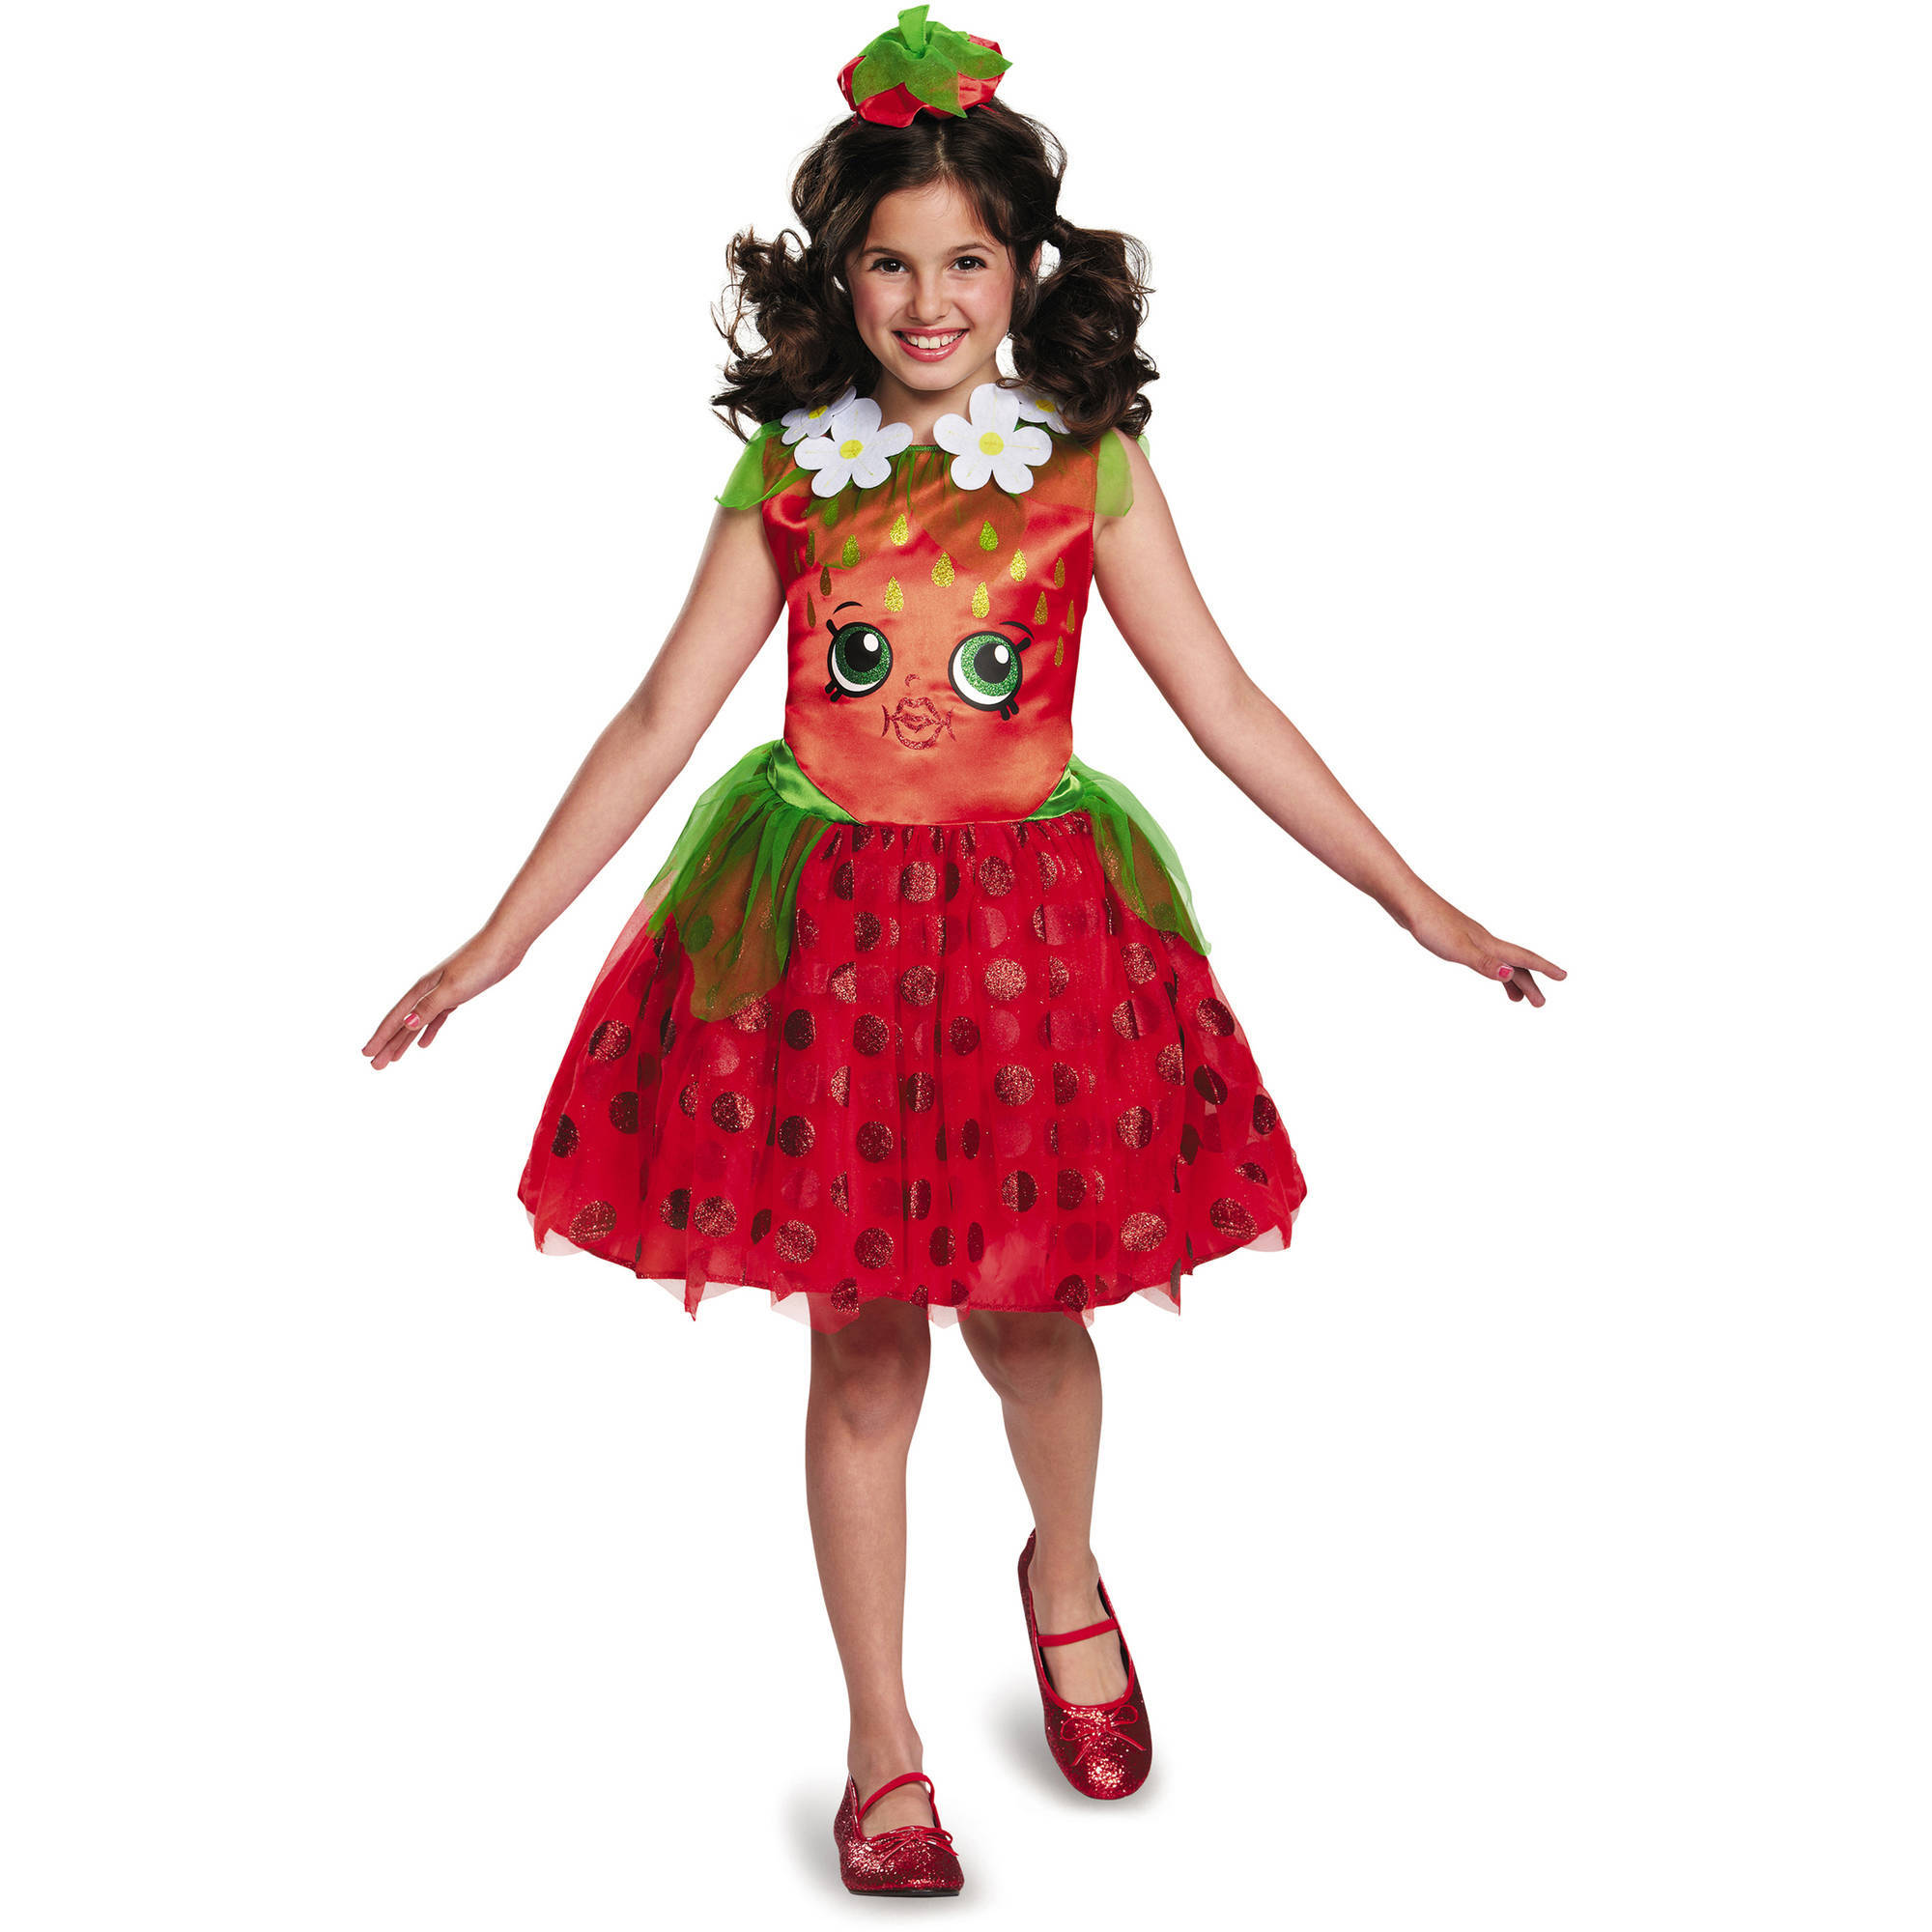 Shopkins Strawberry Kiss Classic Child Halloween Costume  sc 1 st  Walmart & Shopkins Strawberry Kiss Classic Child Halloween Costume - Walmart.com